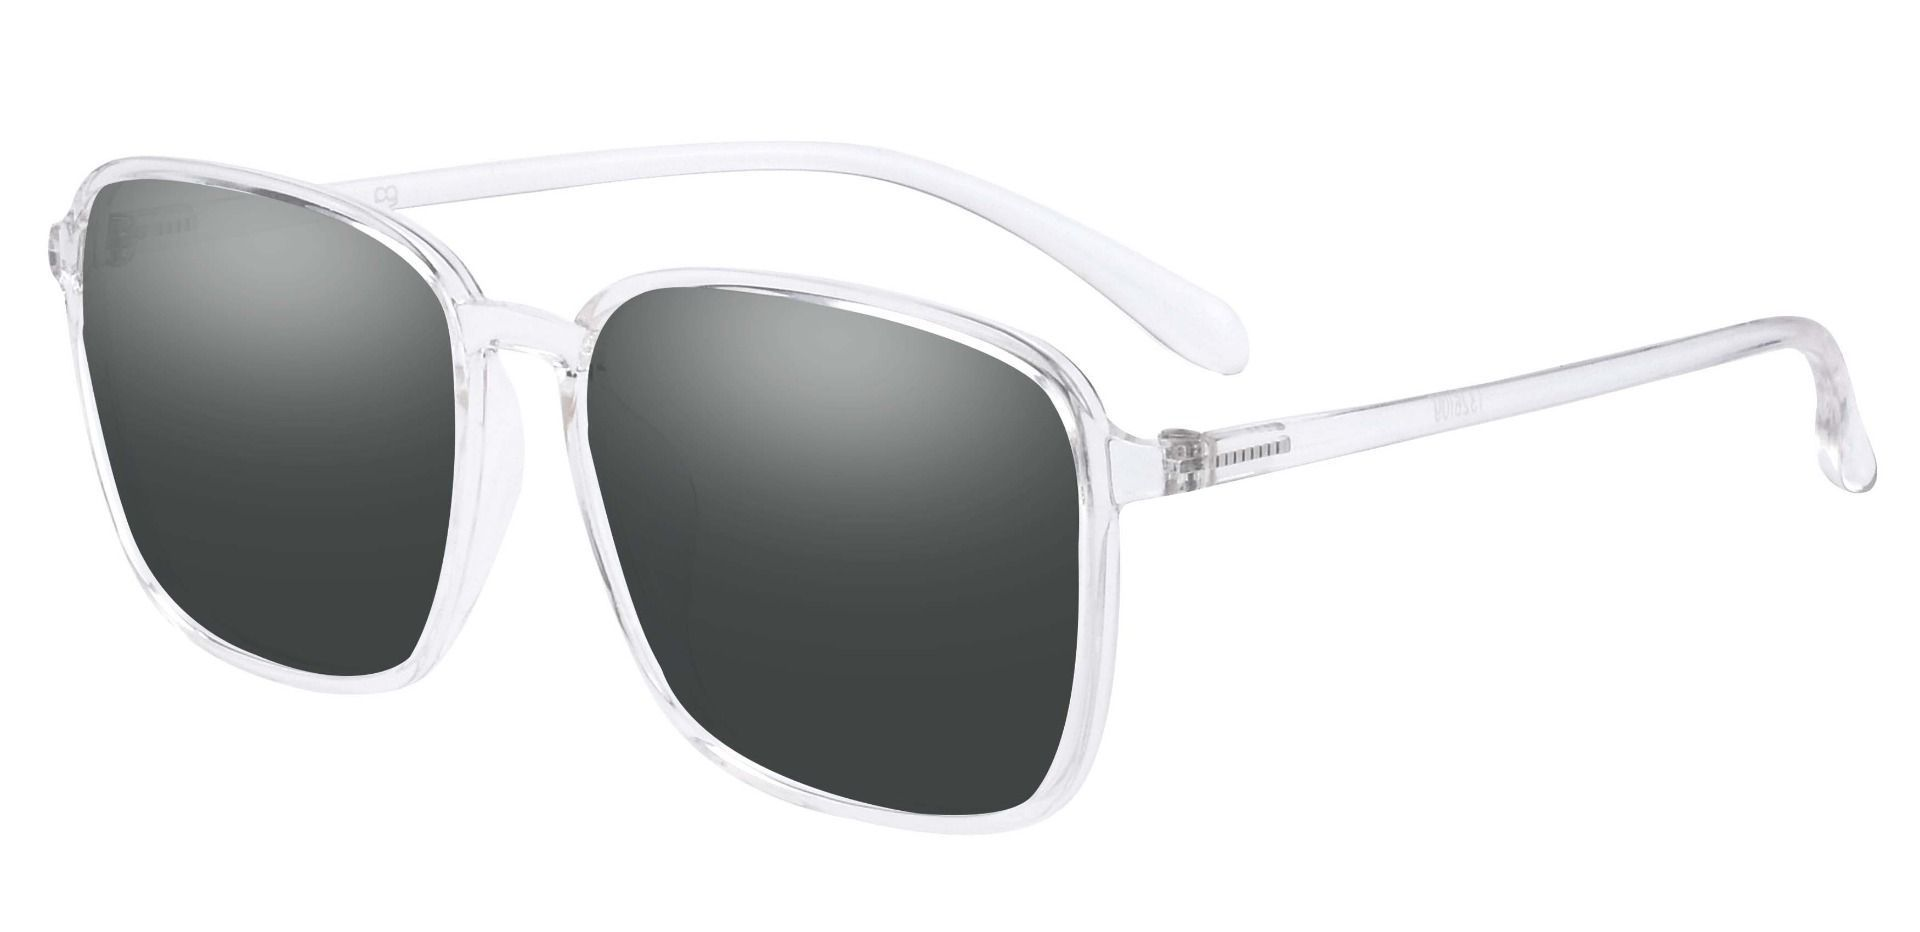 San Antonio Square Prescription Sunglasses - Gray Frame With Gray Lenses